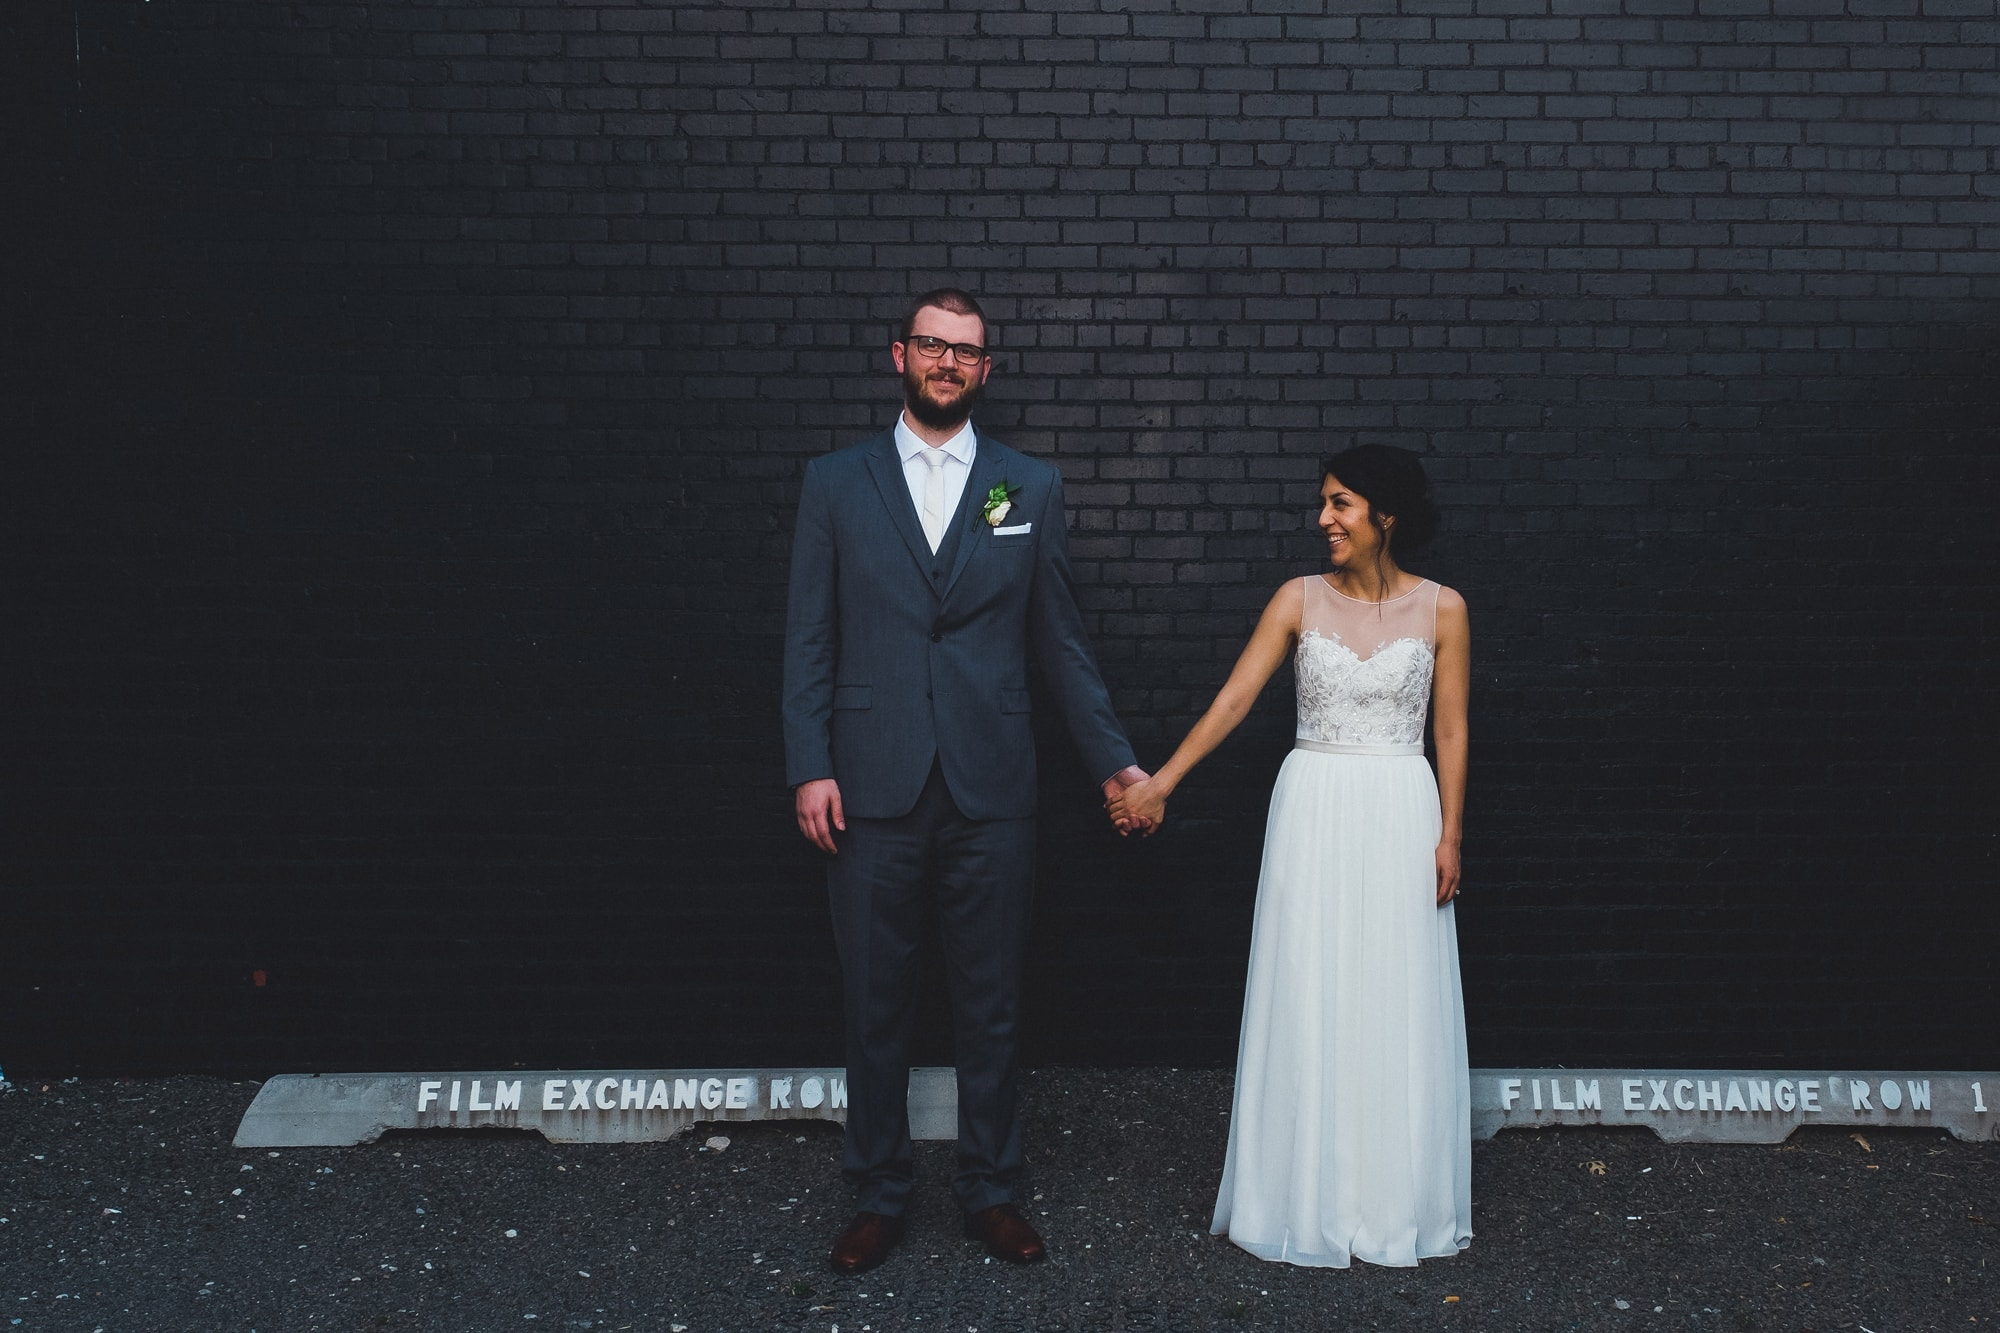 John Moore and Isabel Orozco Moore holding hands in Film Row in Oklahoma City on their wedding day. David's Bridal sheath dress and Men's Warehouse grey suit. // Photo by Leia Smethurst